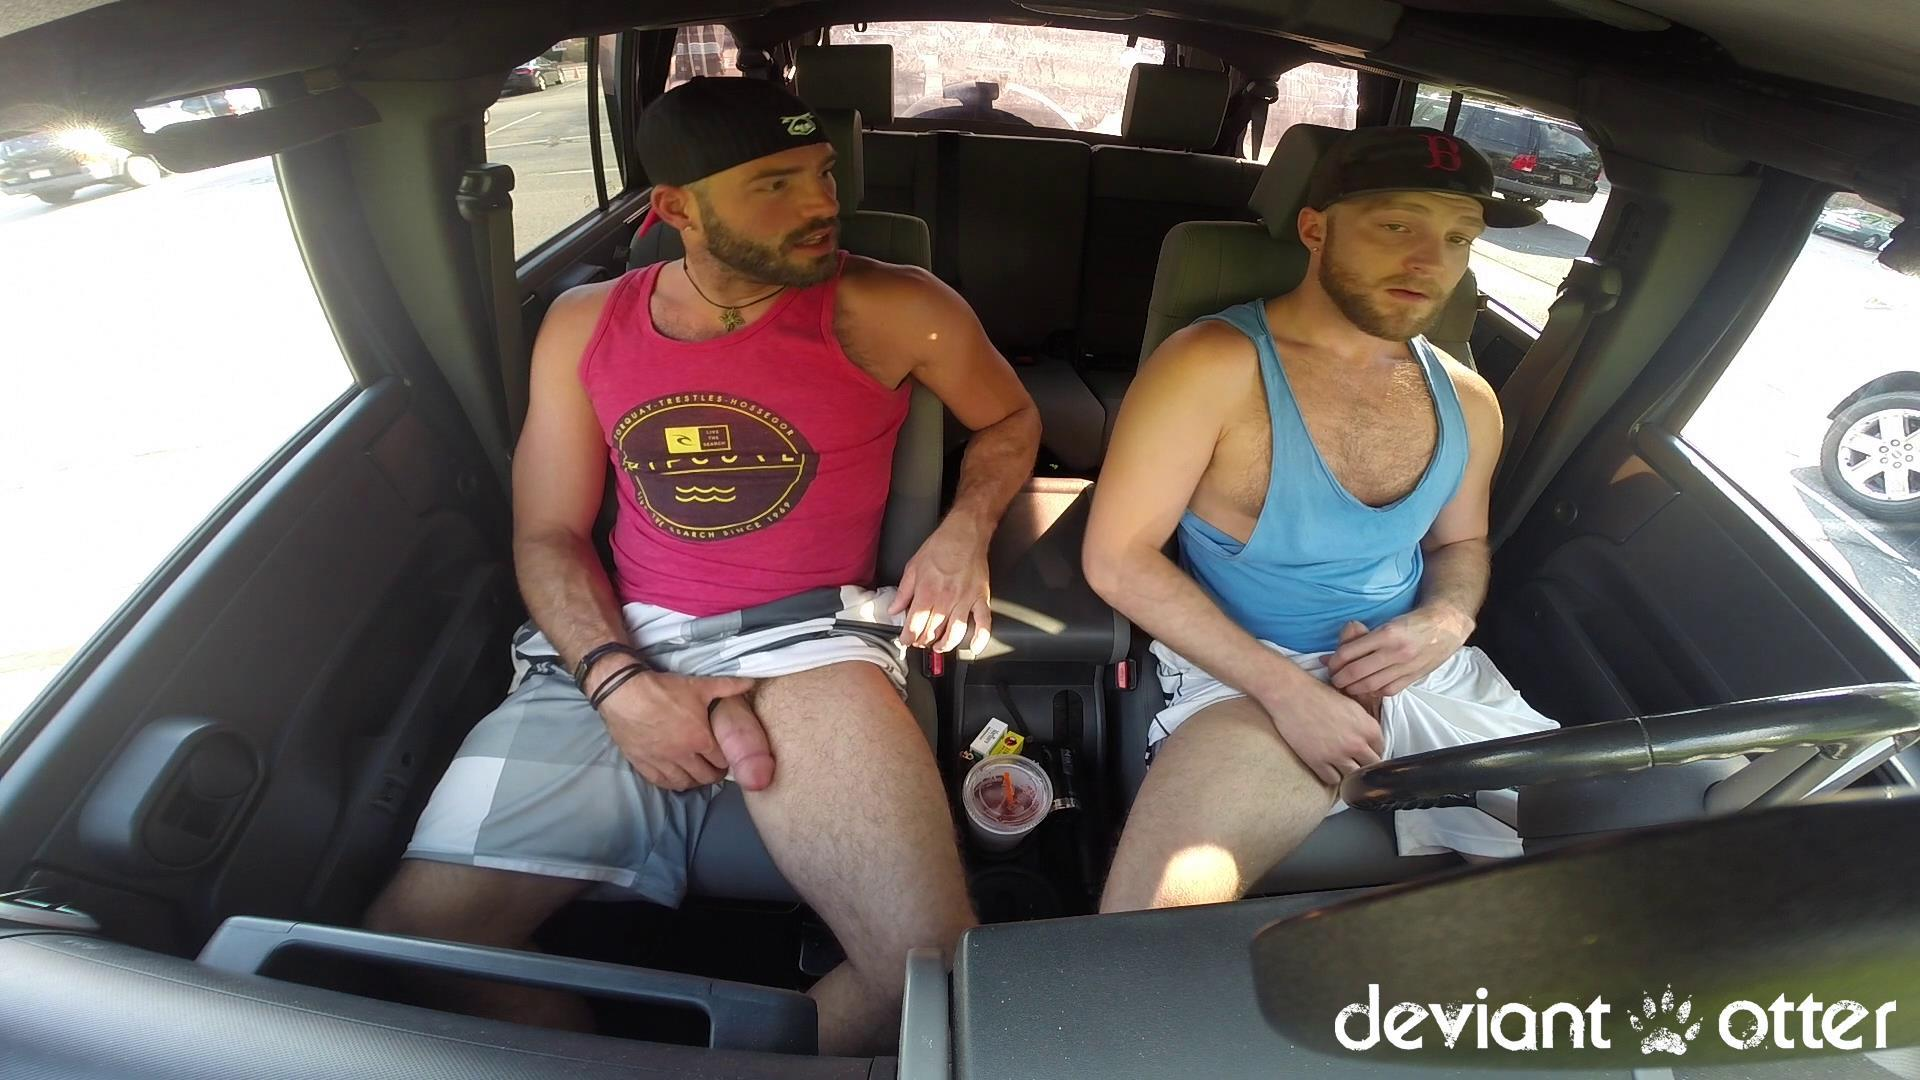 Deviant-Otter-Xavier-Sucking-Cock-In-Public-Hairy-Guys-Amateur-Gay-Porn-03 Masculine Hairy Guys Sucking Each Other's Cock In A Parking Lot